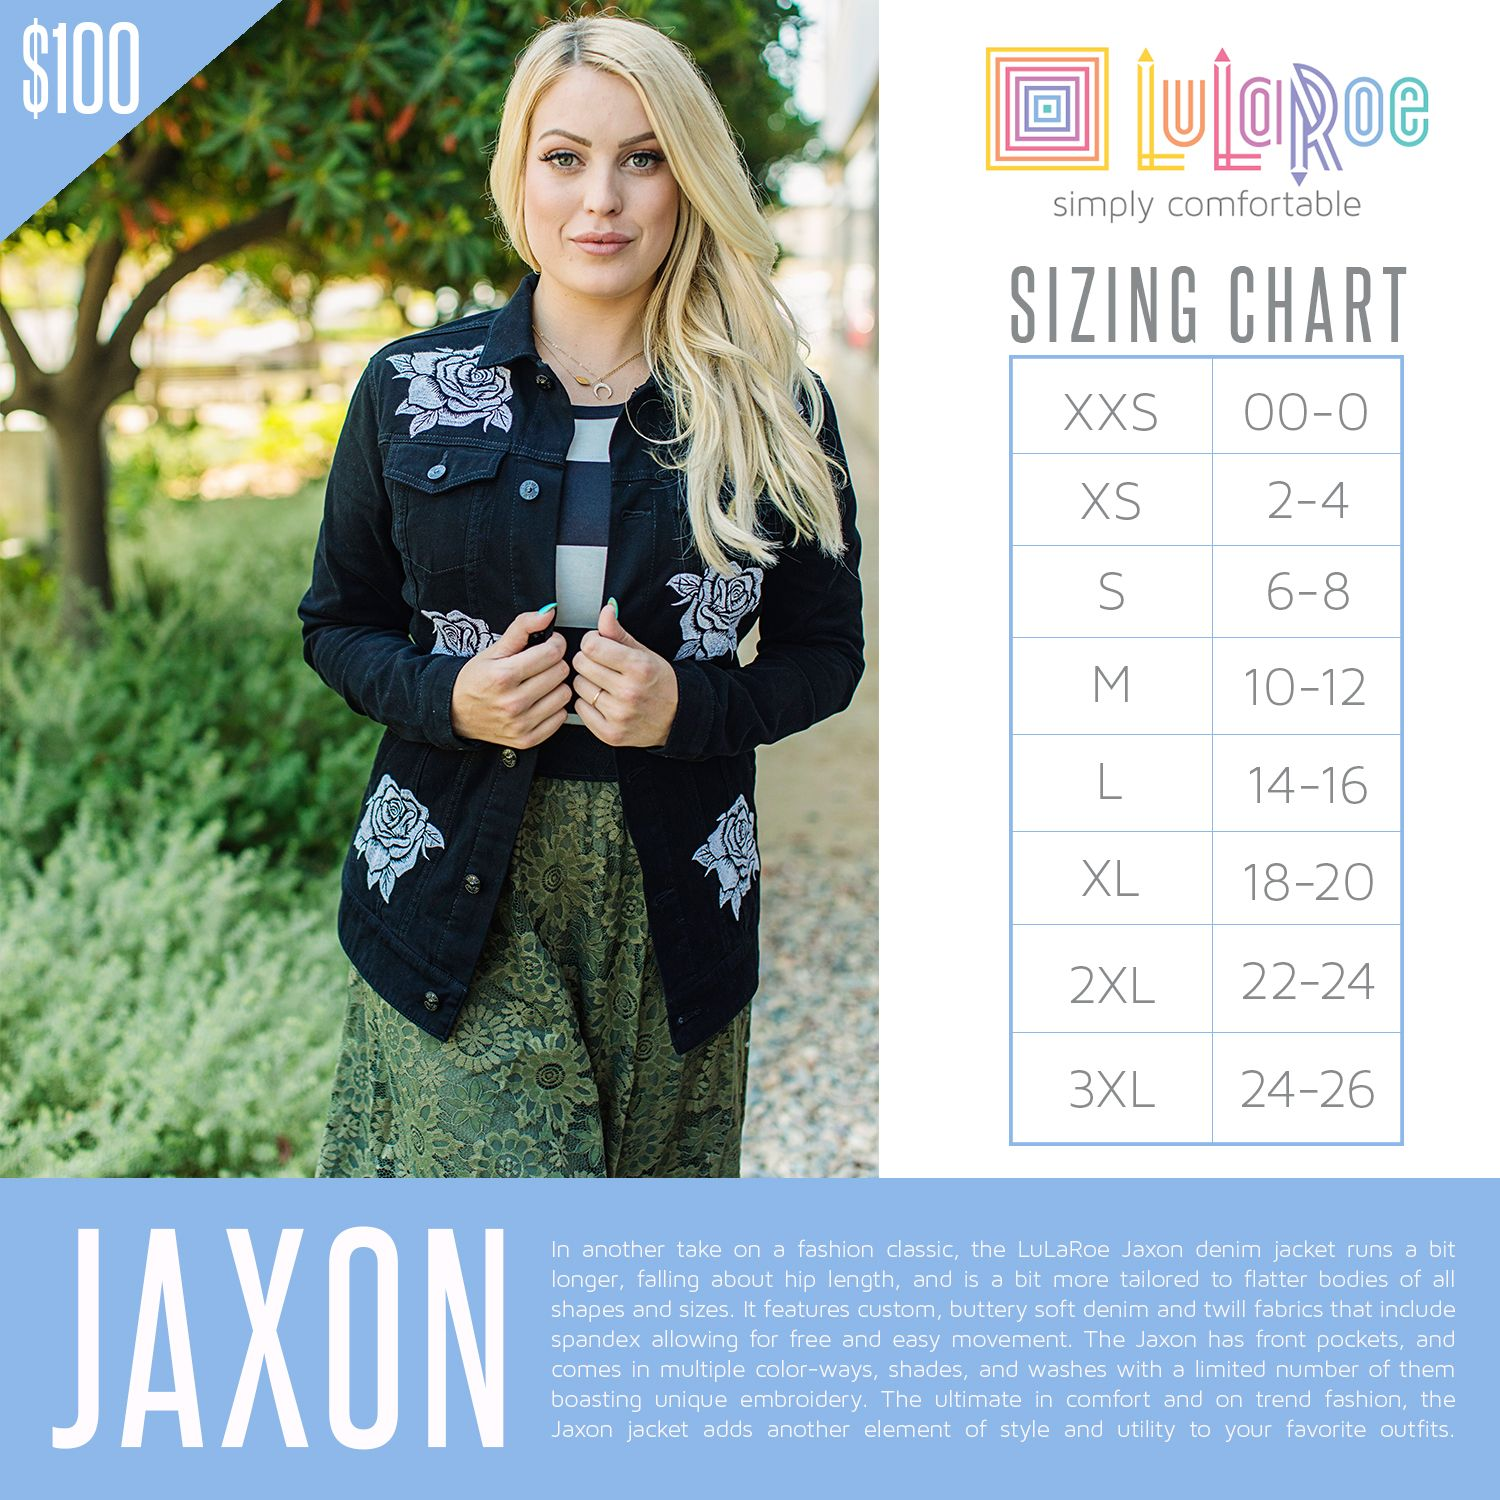 The Lularoe Jaxon Is Designed To Fit All Body Styles Lularoe